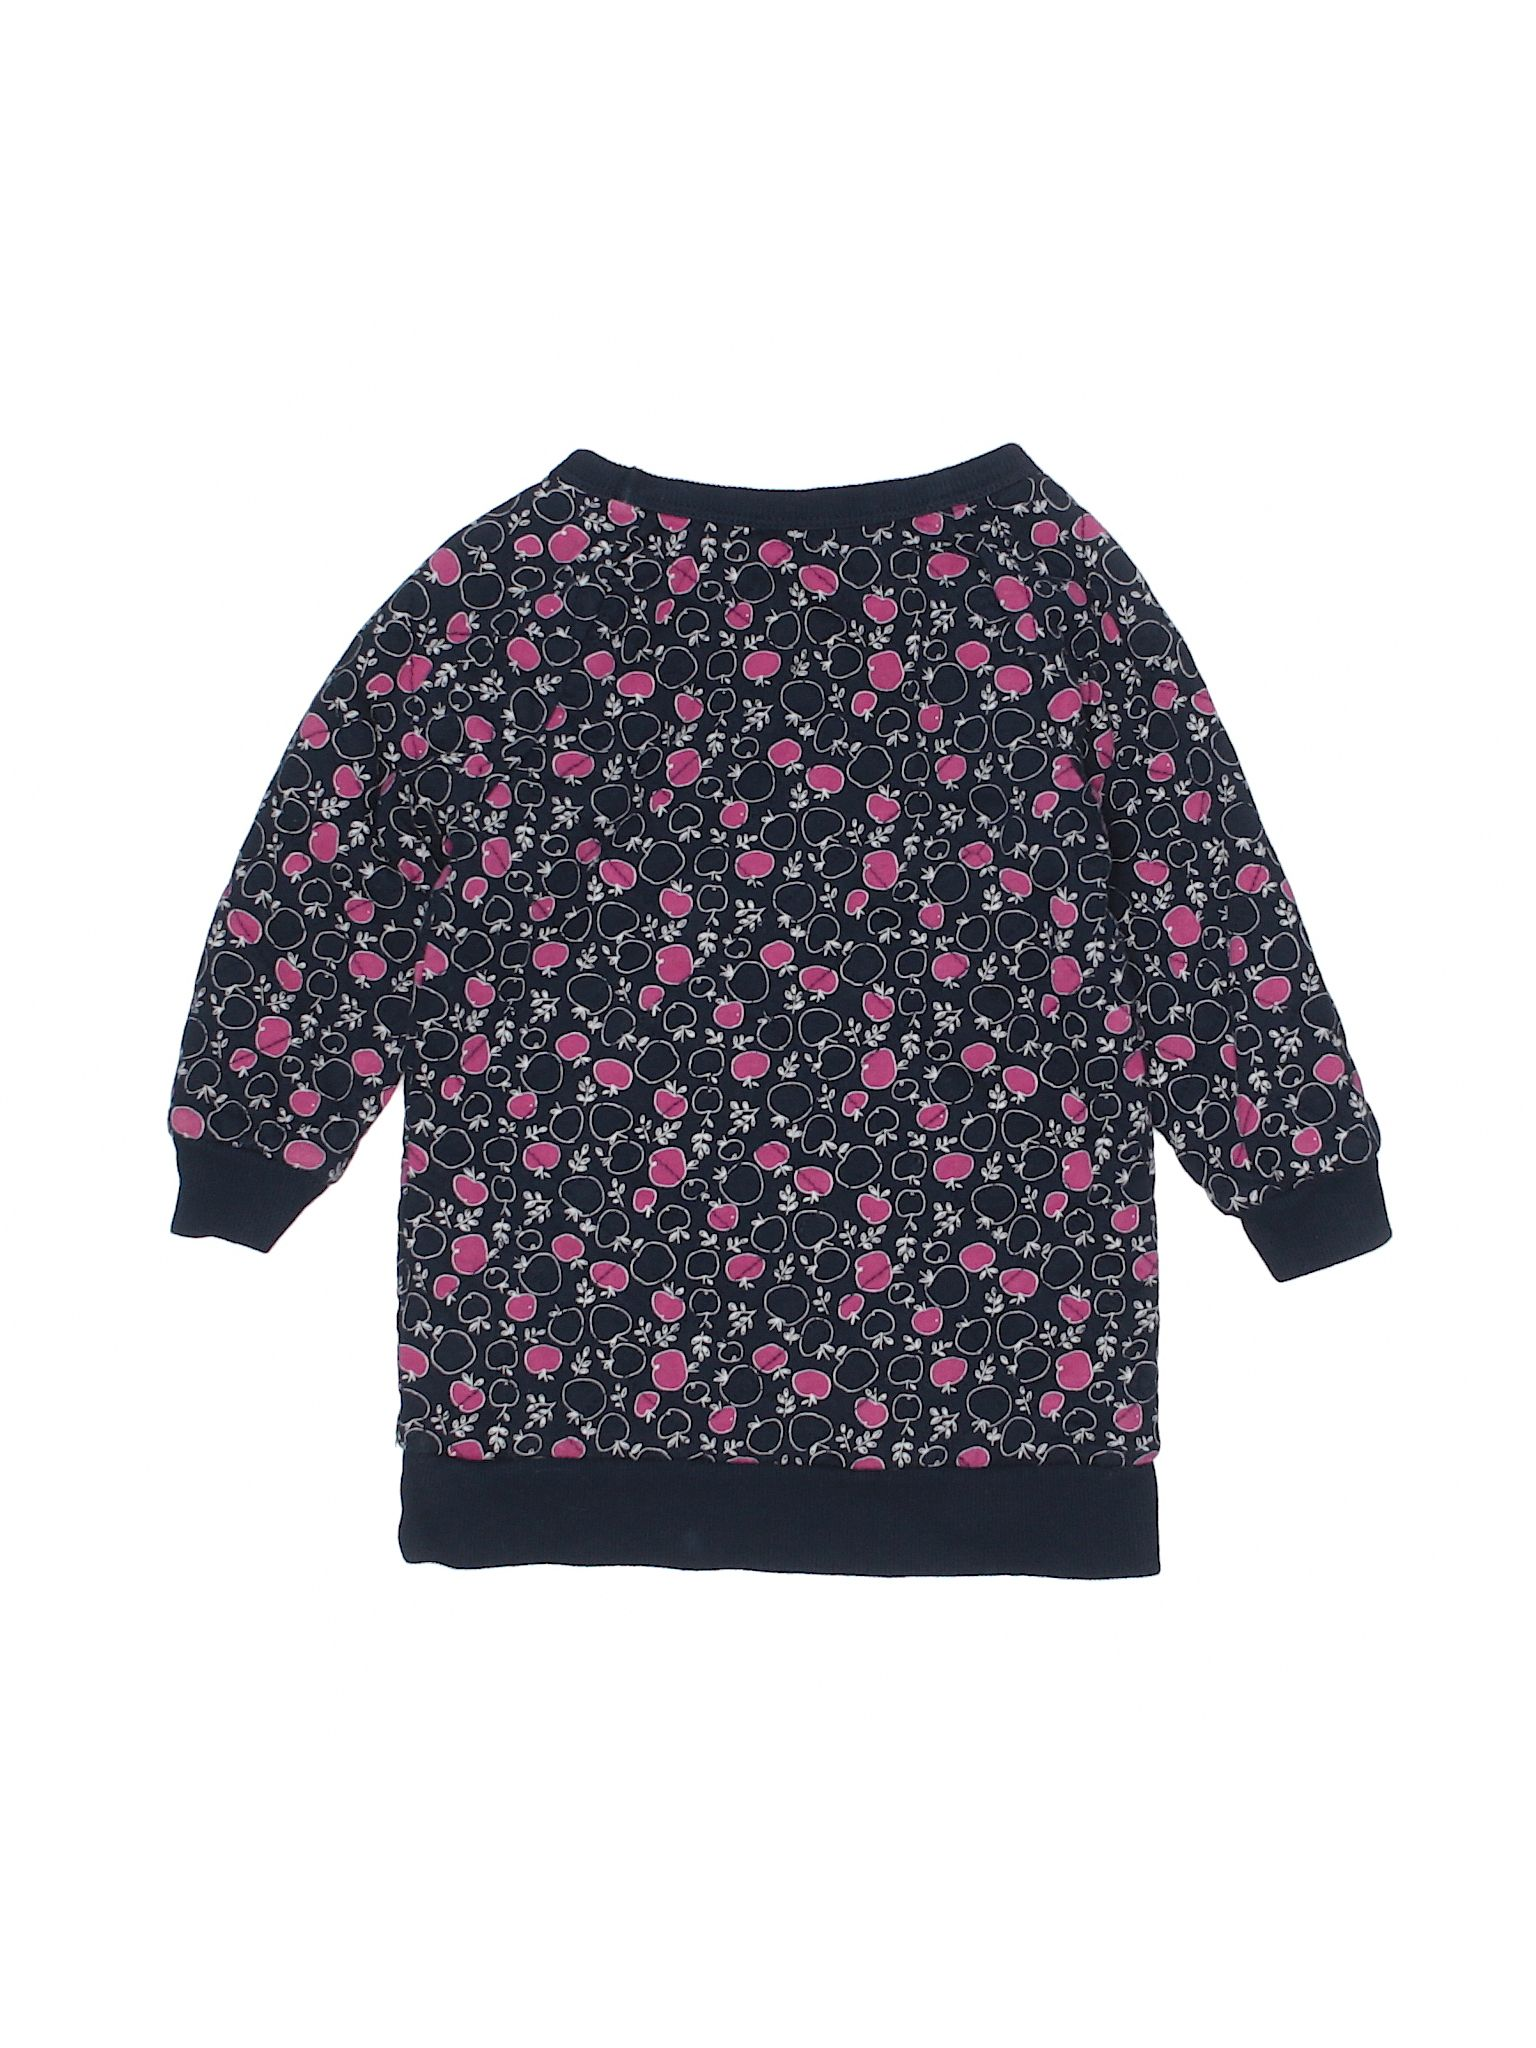 a1730635f5c5 Baby Gap Pullover Sweater  Navy Blue Girls Tops - 30289533 ...